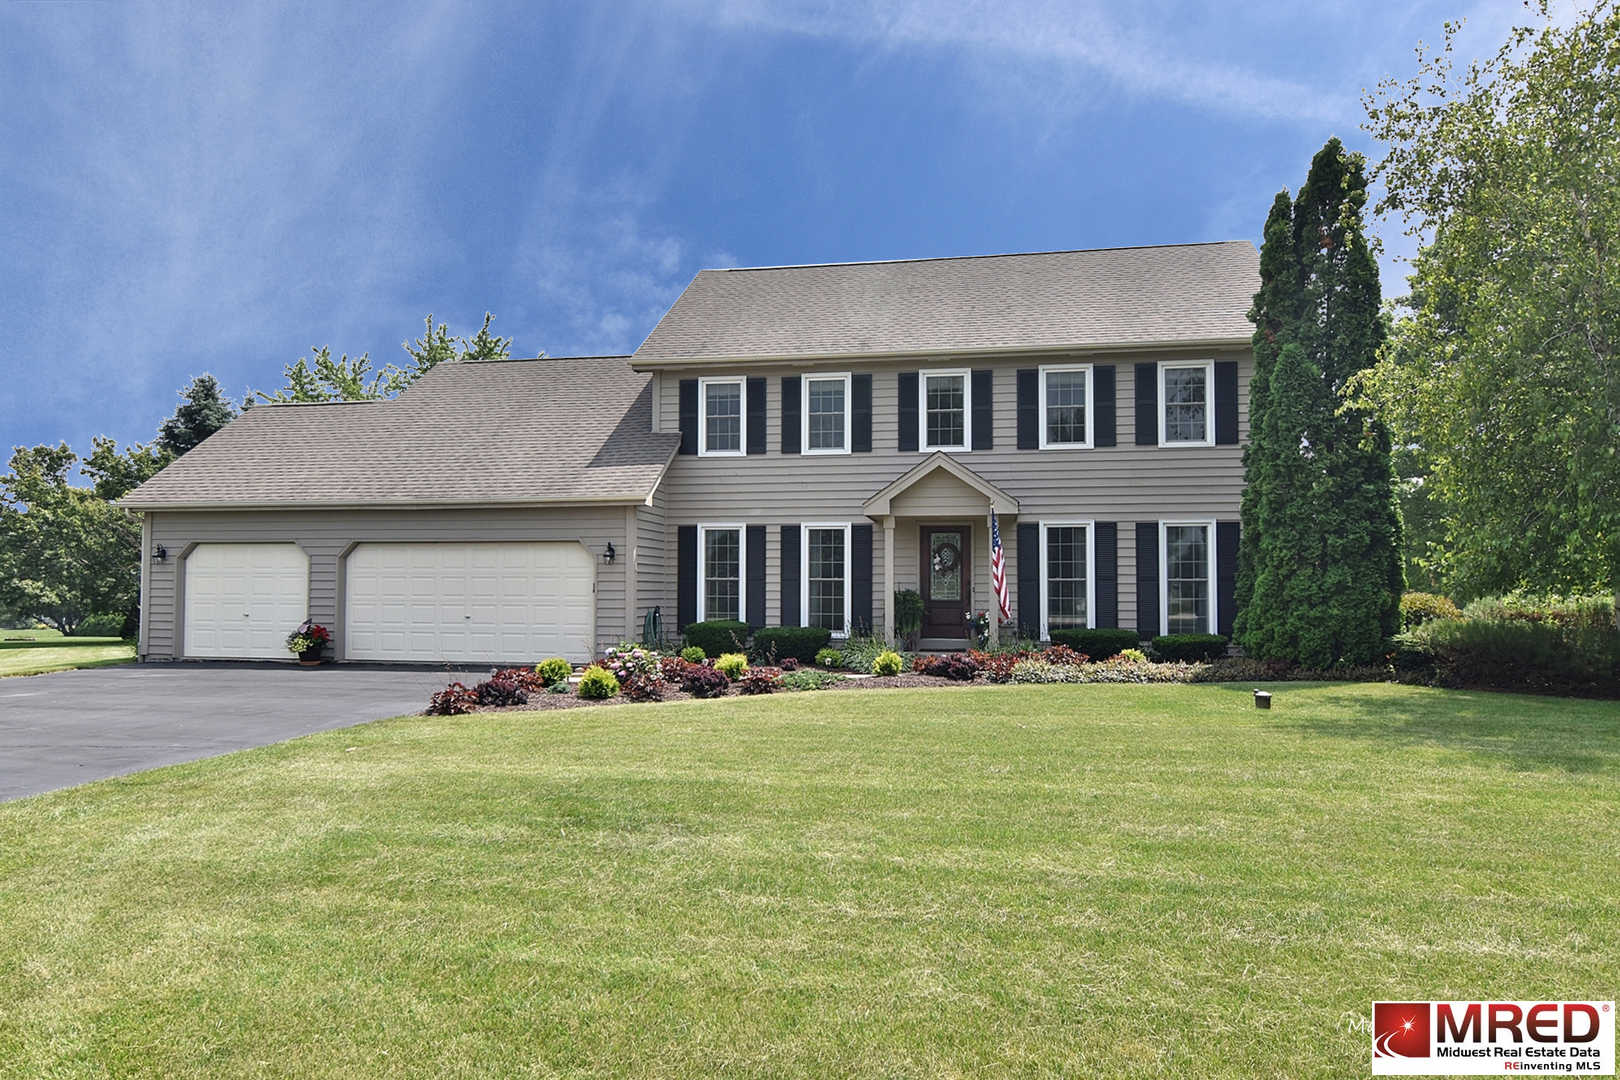 43W349 Beaver Lane, St. Charles, IL 60175 now has a new price of $379,900!